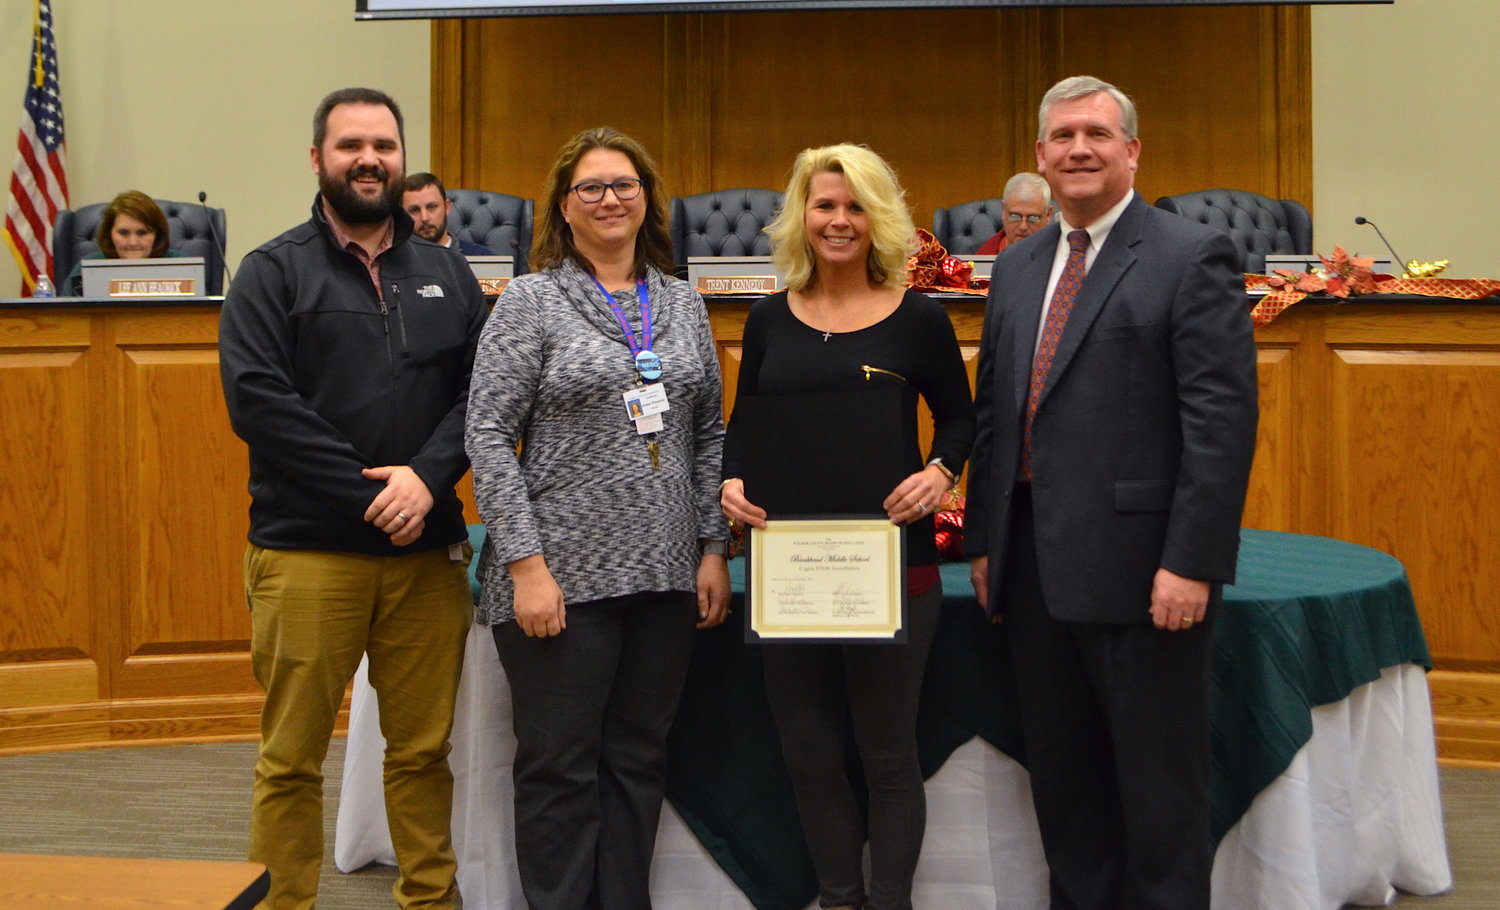 Bankhead Middle School was recognized at a recent meeting of the Walker County Board of Education for receiving STEM certification.